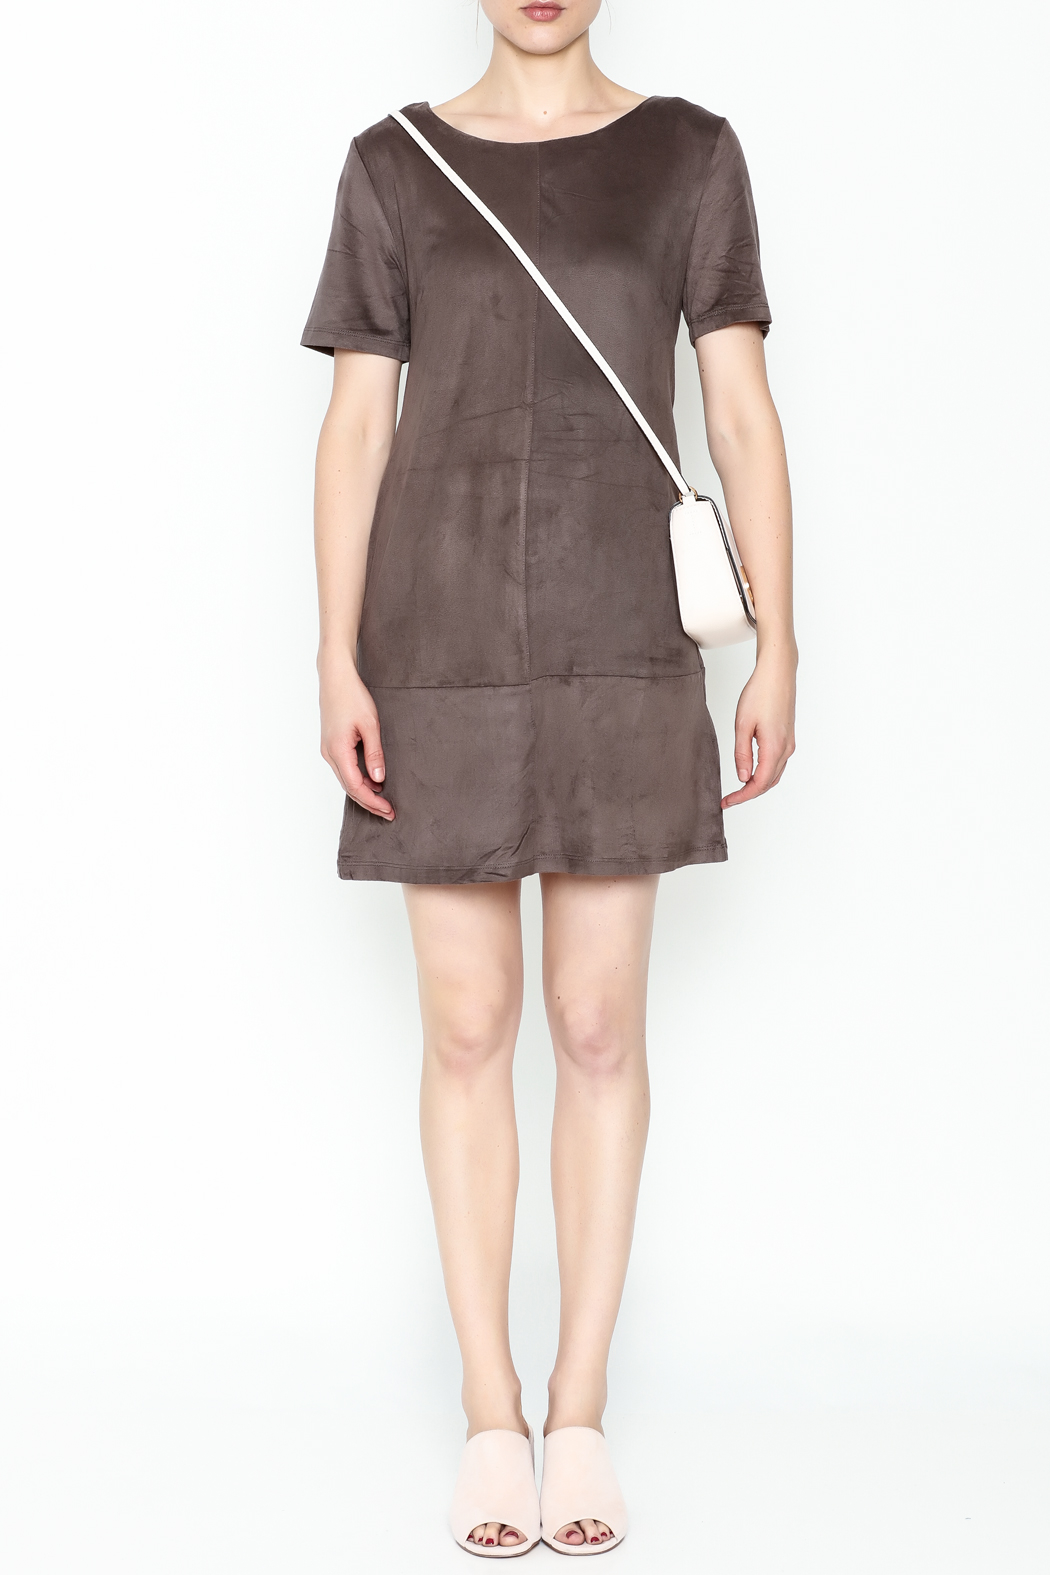 Bishop + Young Ivy Suede Shift Dress - Front Full Image